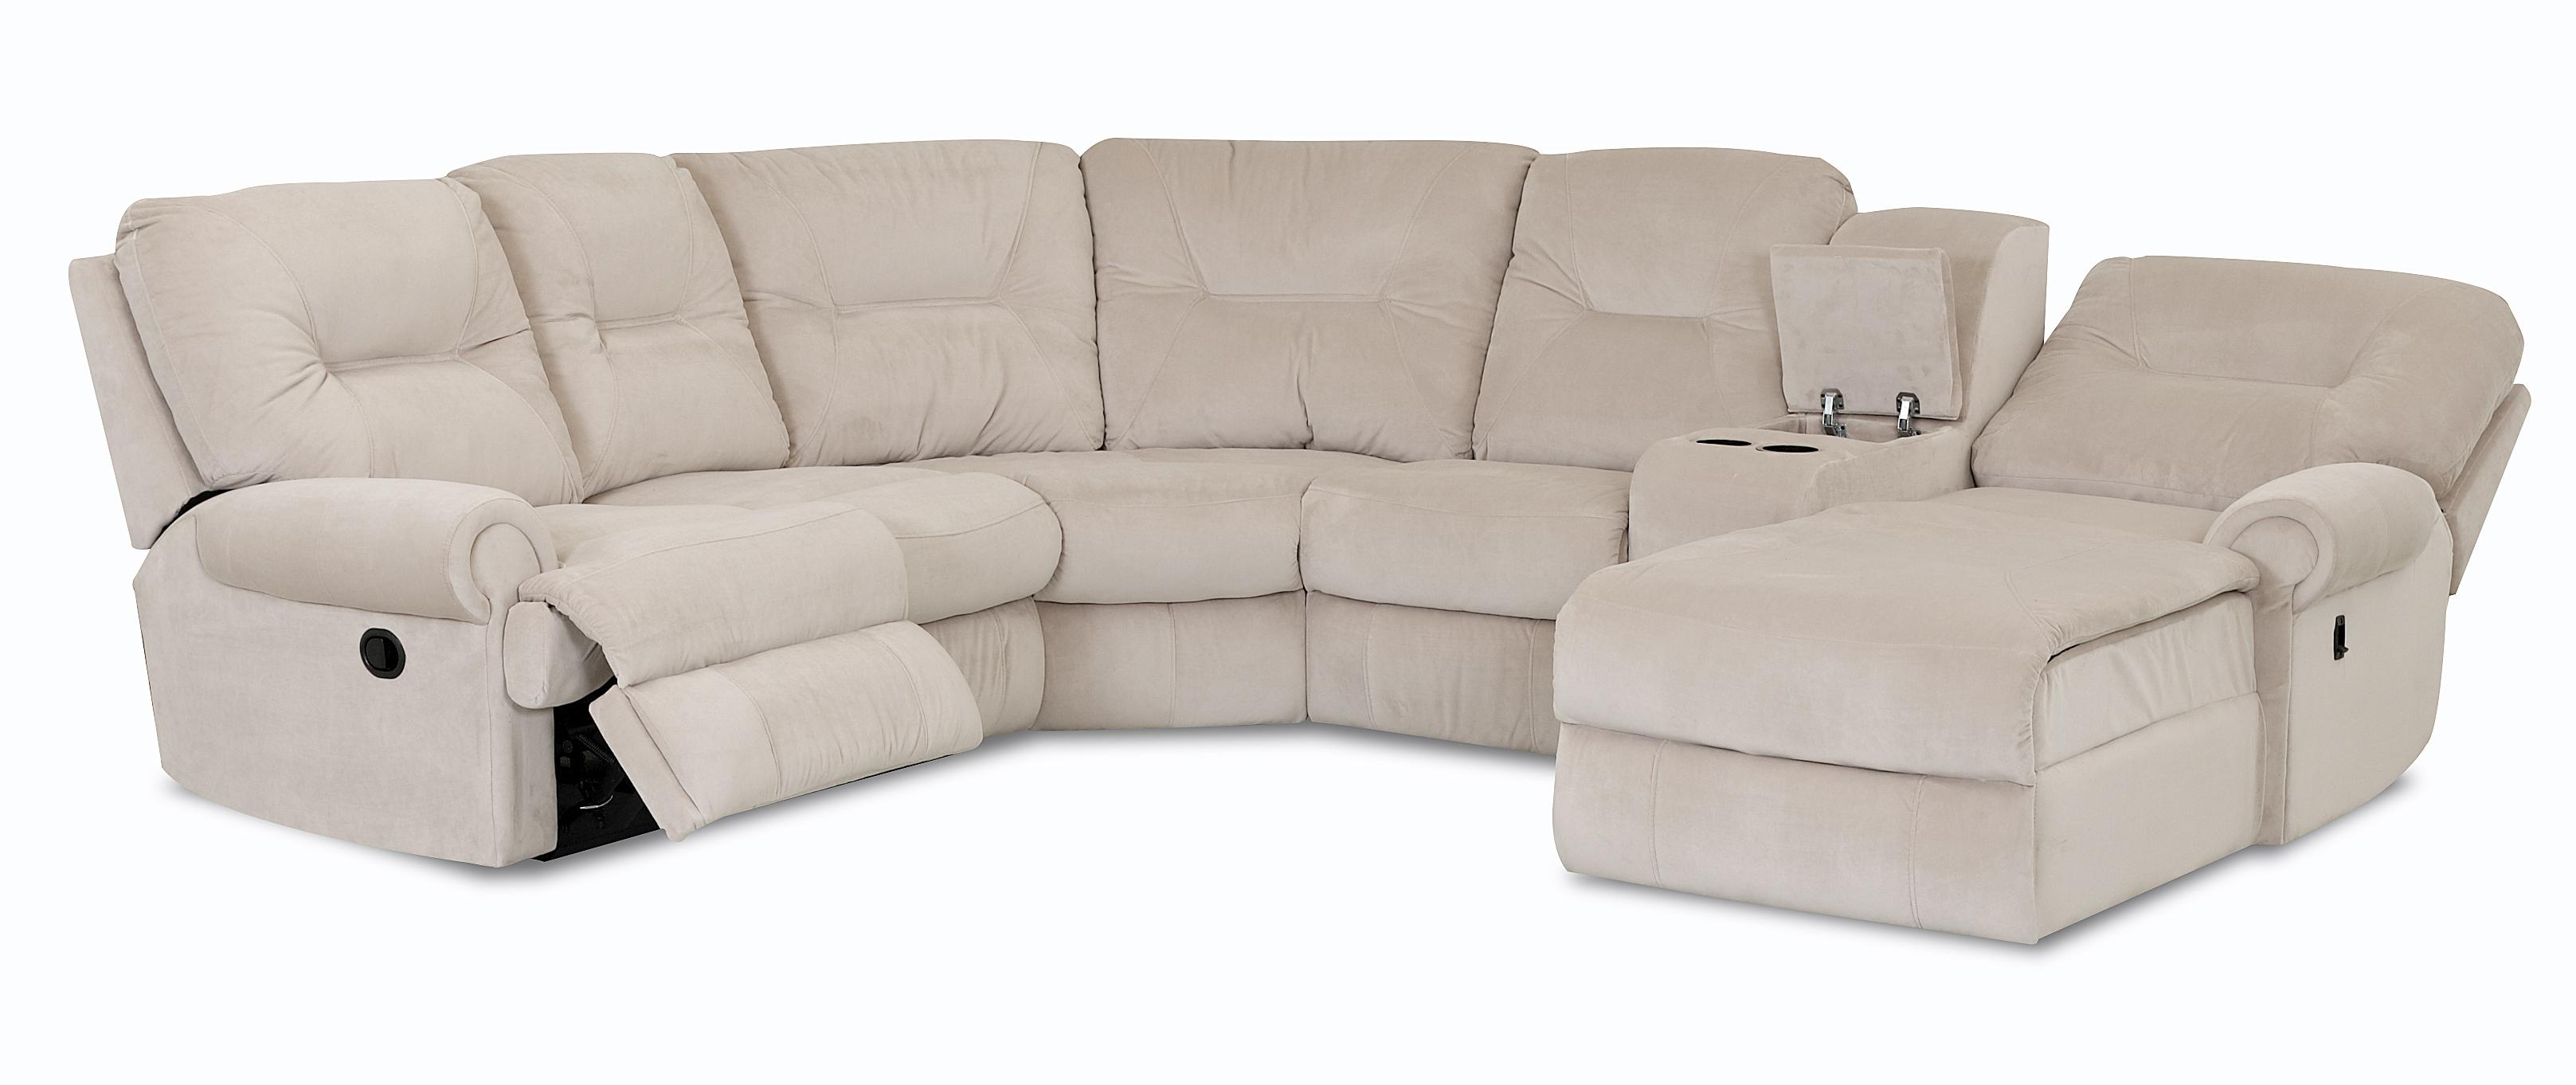 Traditional reclining sectional sofa by klaussner wolf for Traditional sofas and loveseats